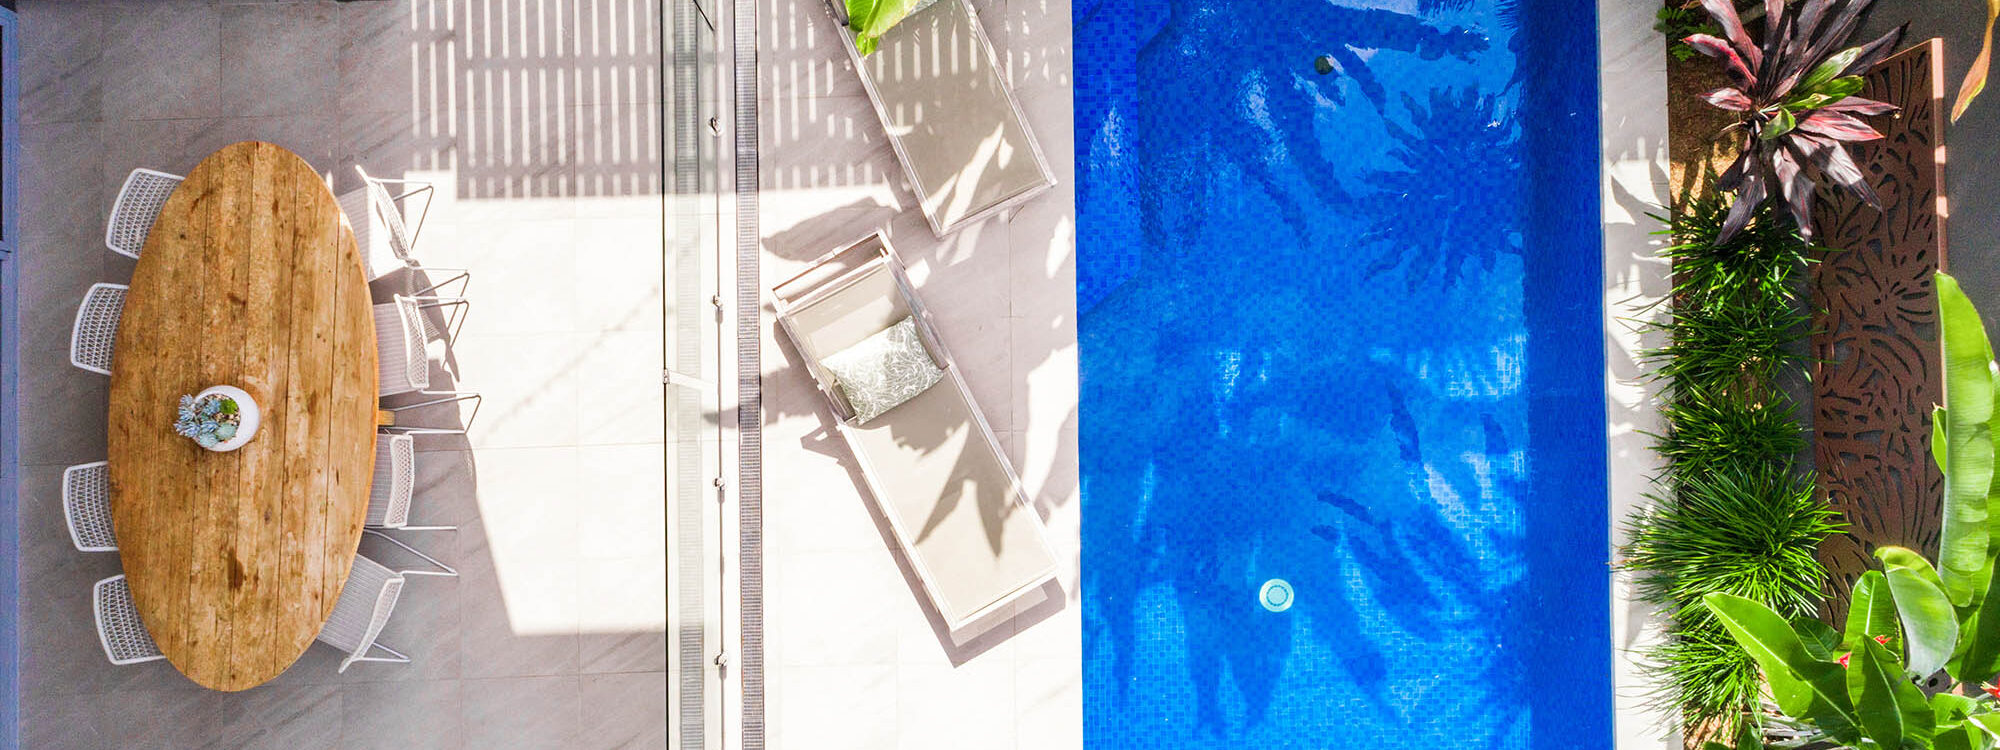 Kokos Beach House 1 - Byron Bay - Aerial Straight Down to Pool d